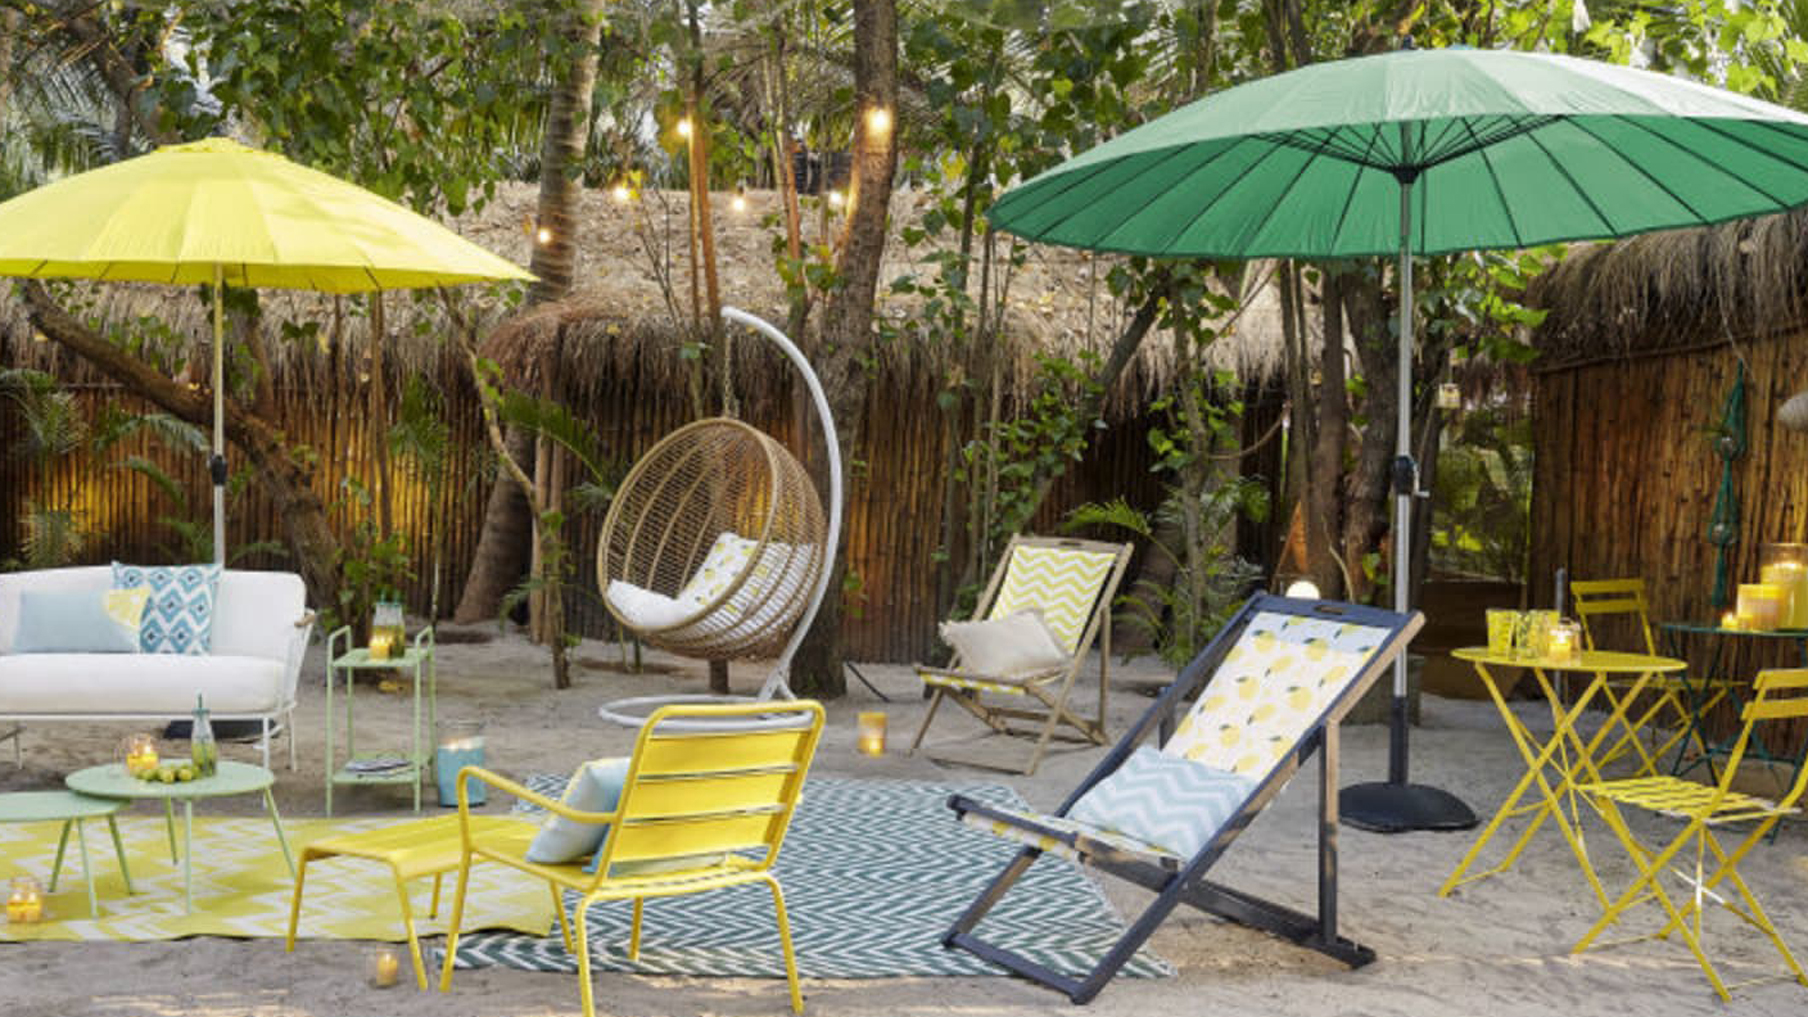 Best garden parasols and bases 2020: patio umbrellas for